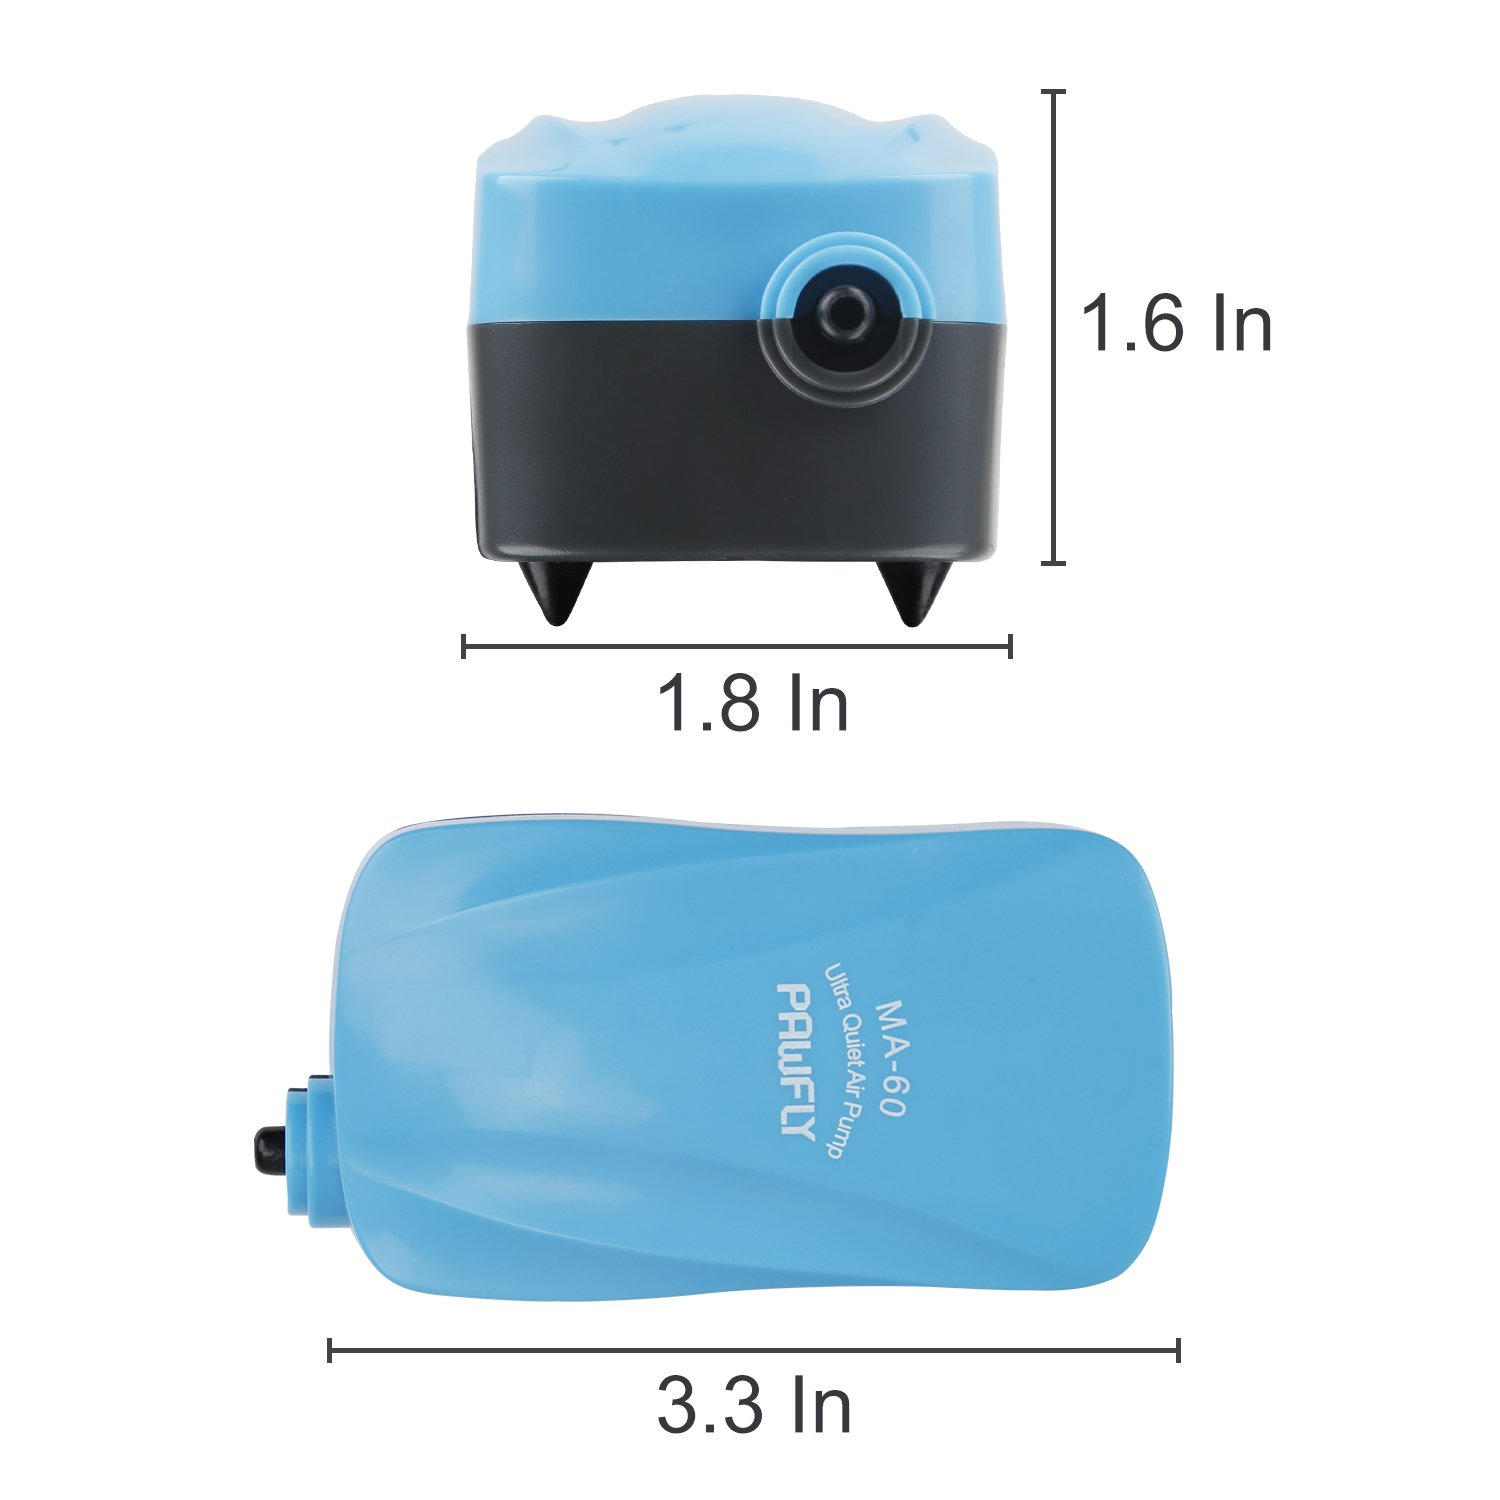 1.8 L//min Pawfly MA-60 Quiet Aquarium Air Pump for 10 Gallon with Accessories Air Stone Check Valve and Tube